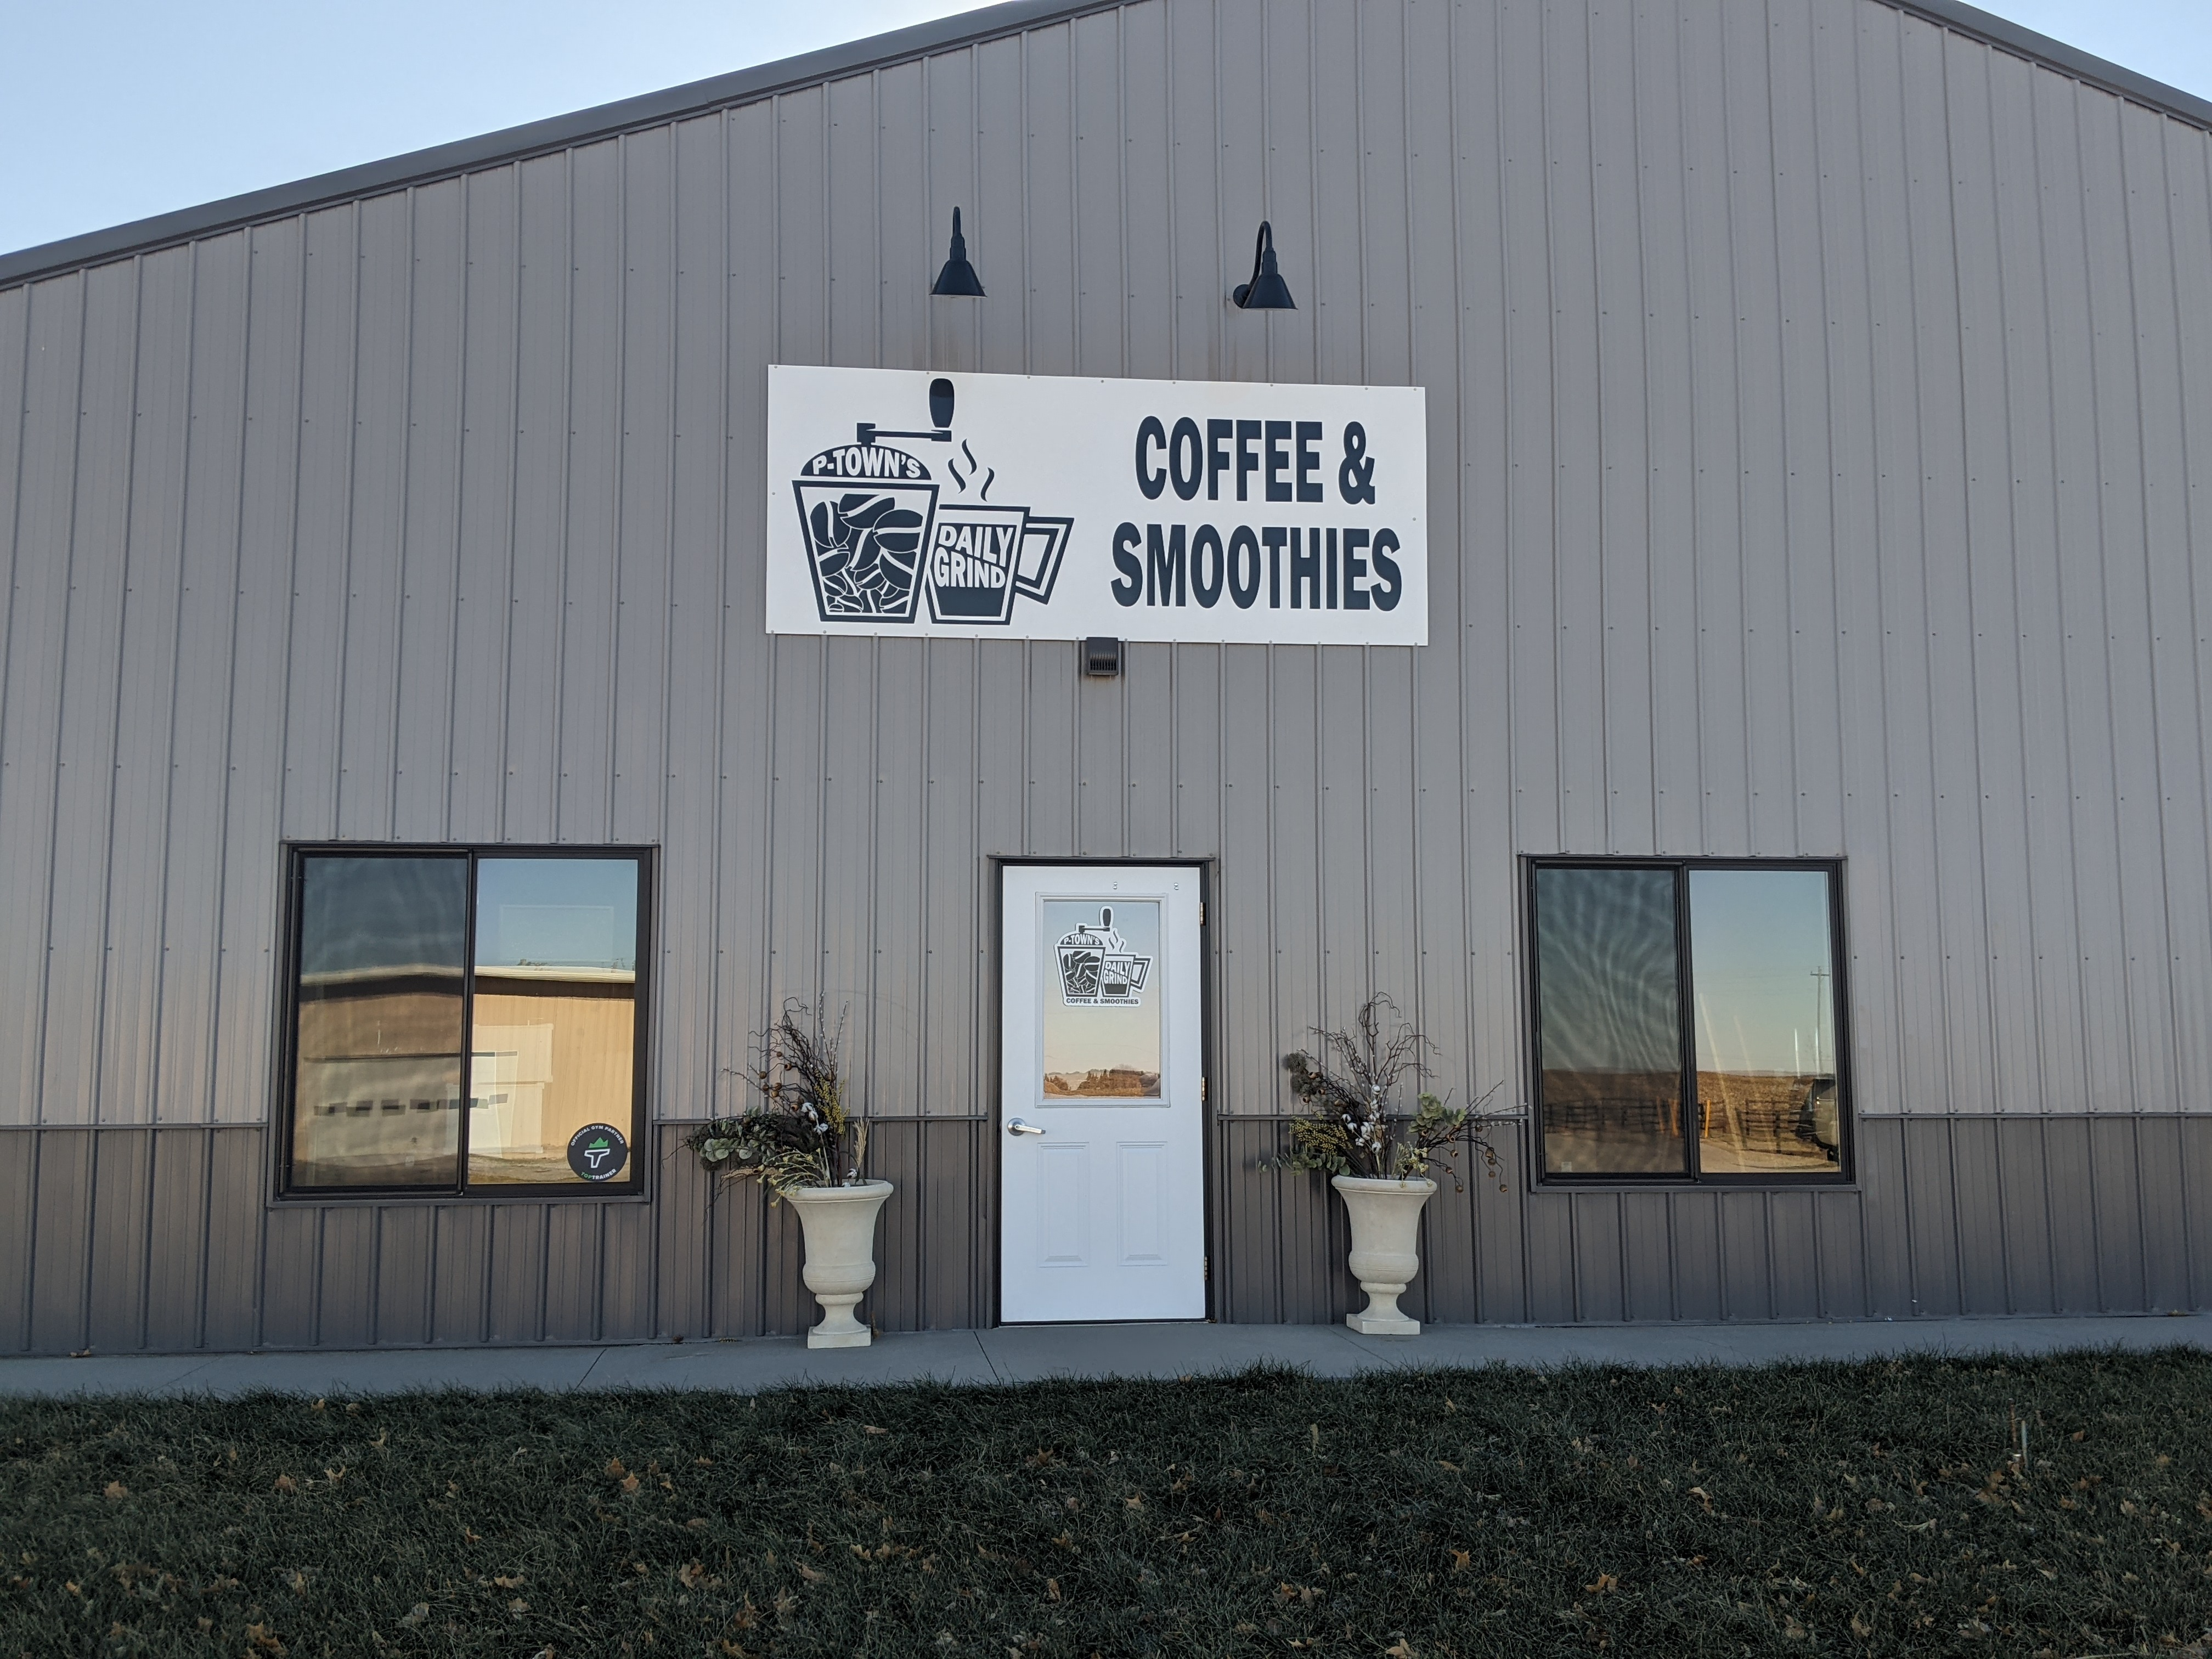 P-Town's Daily Grind Coffee Shop